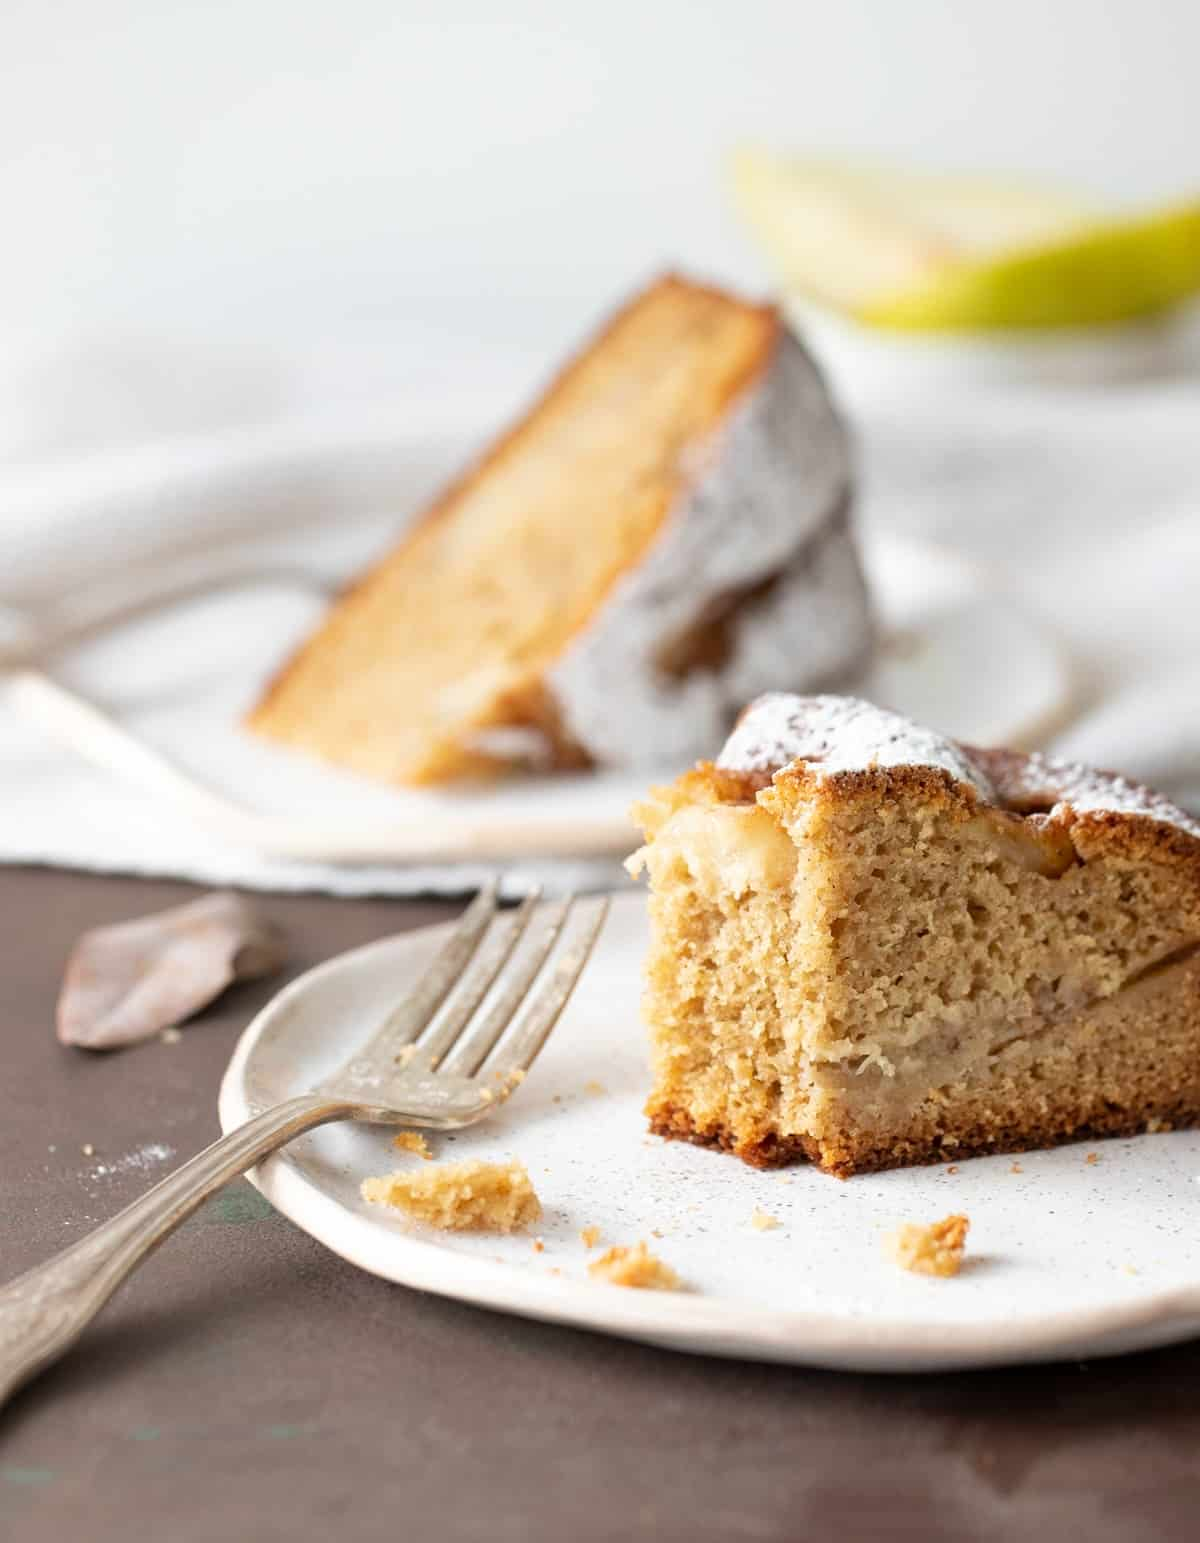 Eaten slice of pear cake on white plate, silver fork, dark surface, whole slice in background